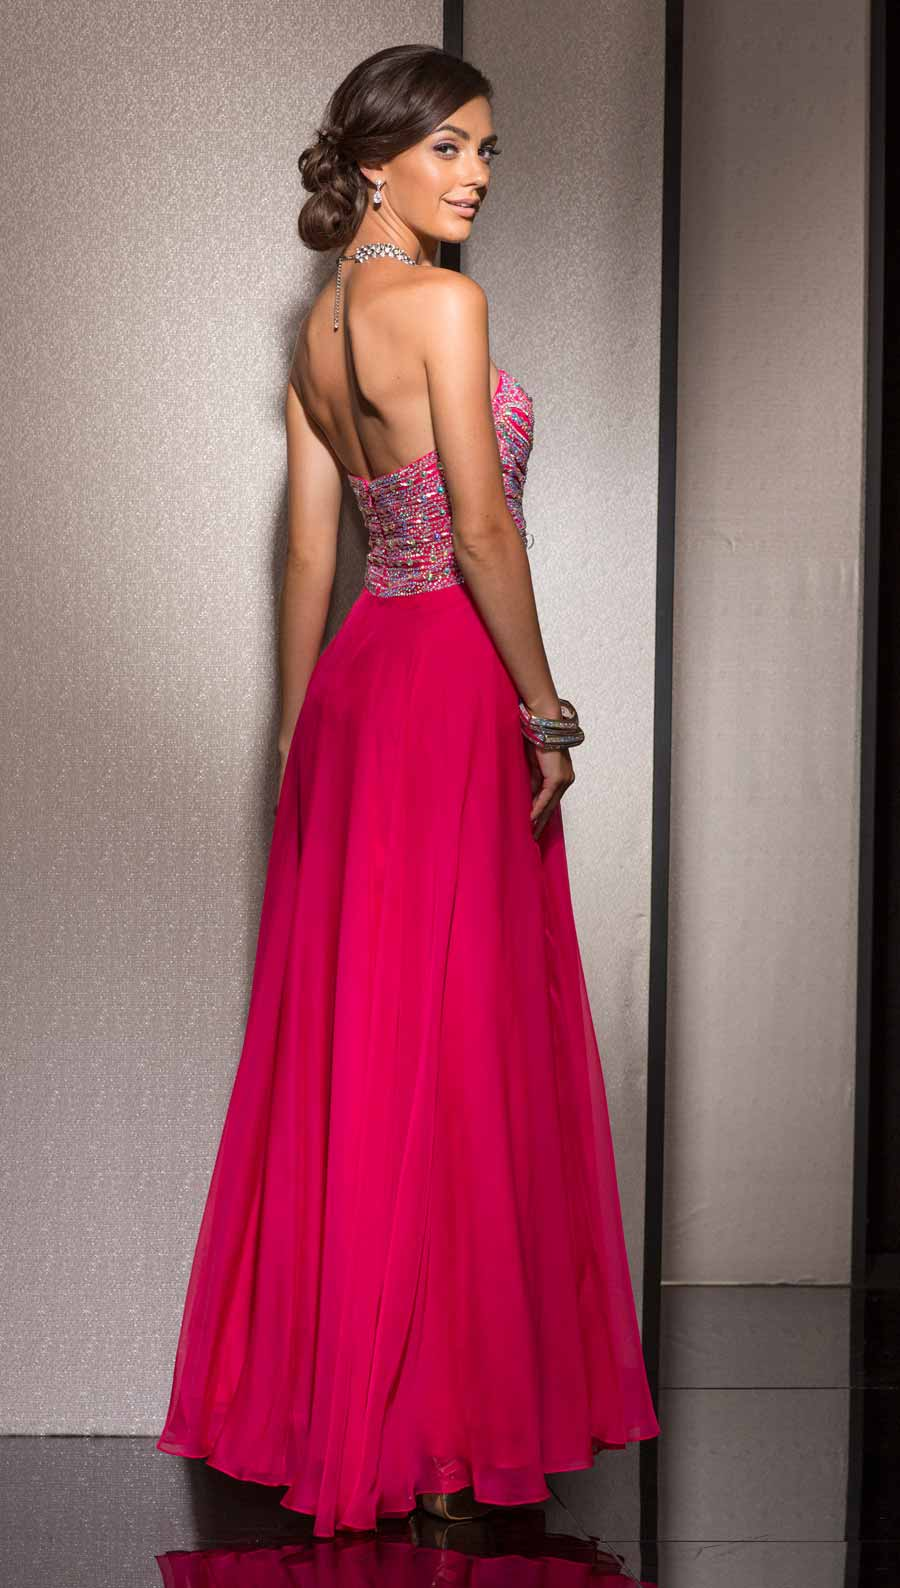 65a660daf84 Clarisse Long Formal Chiffon Prom Dress 2611